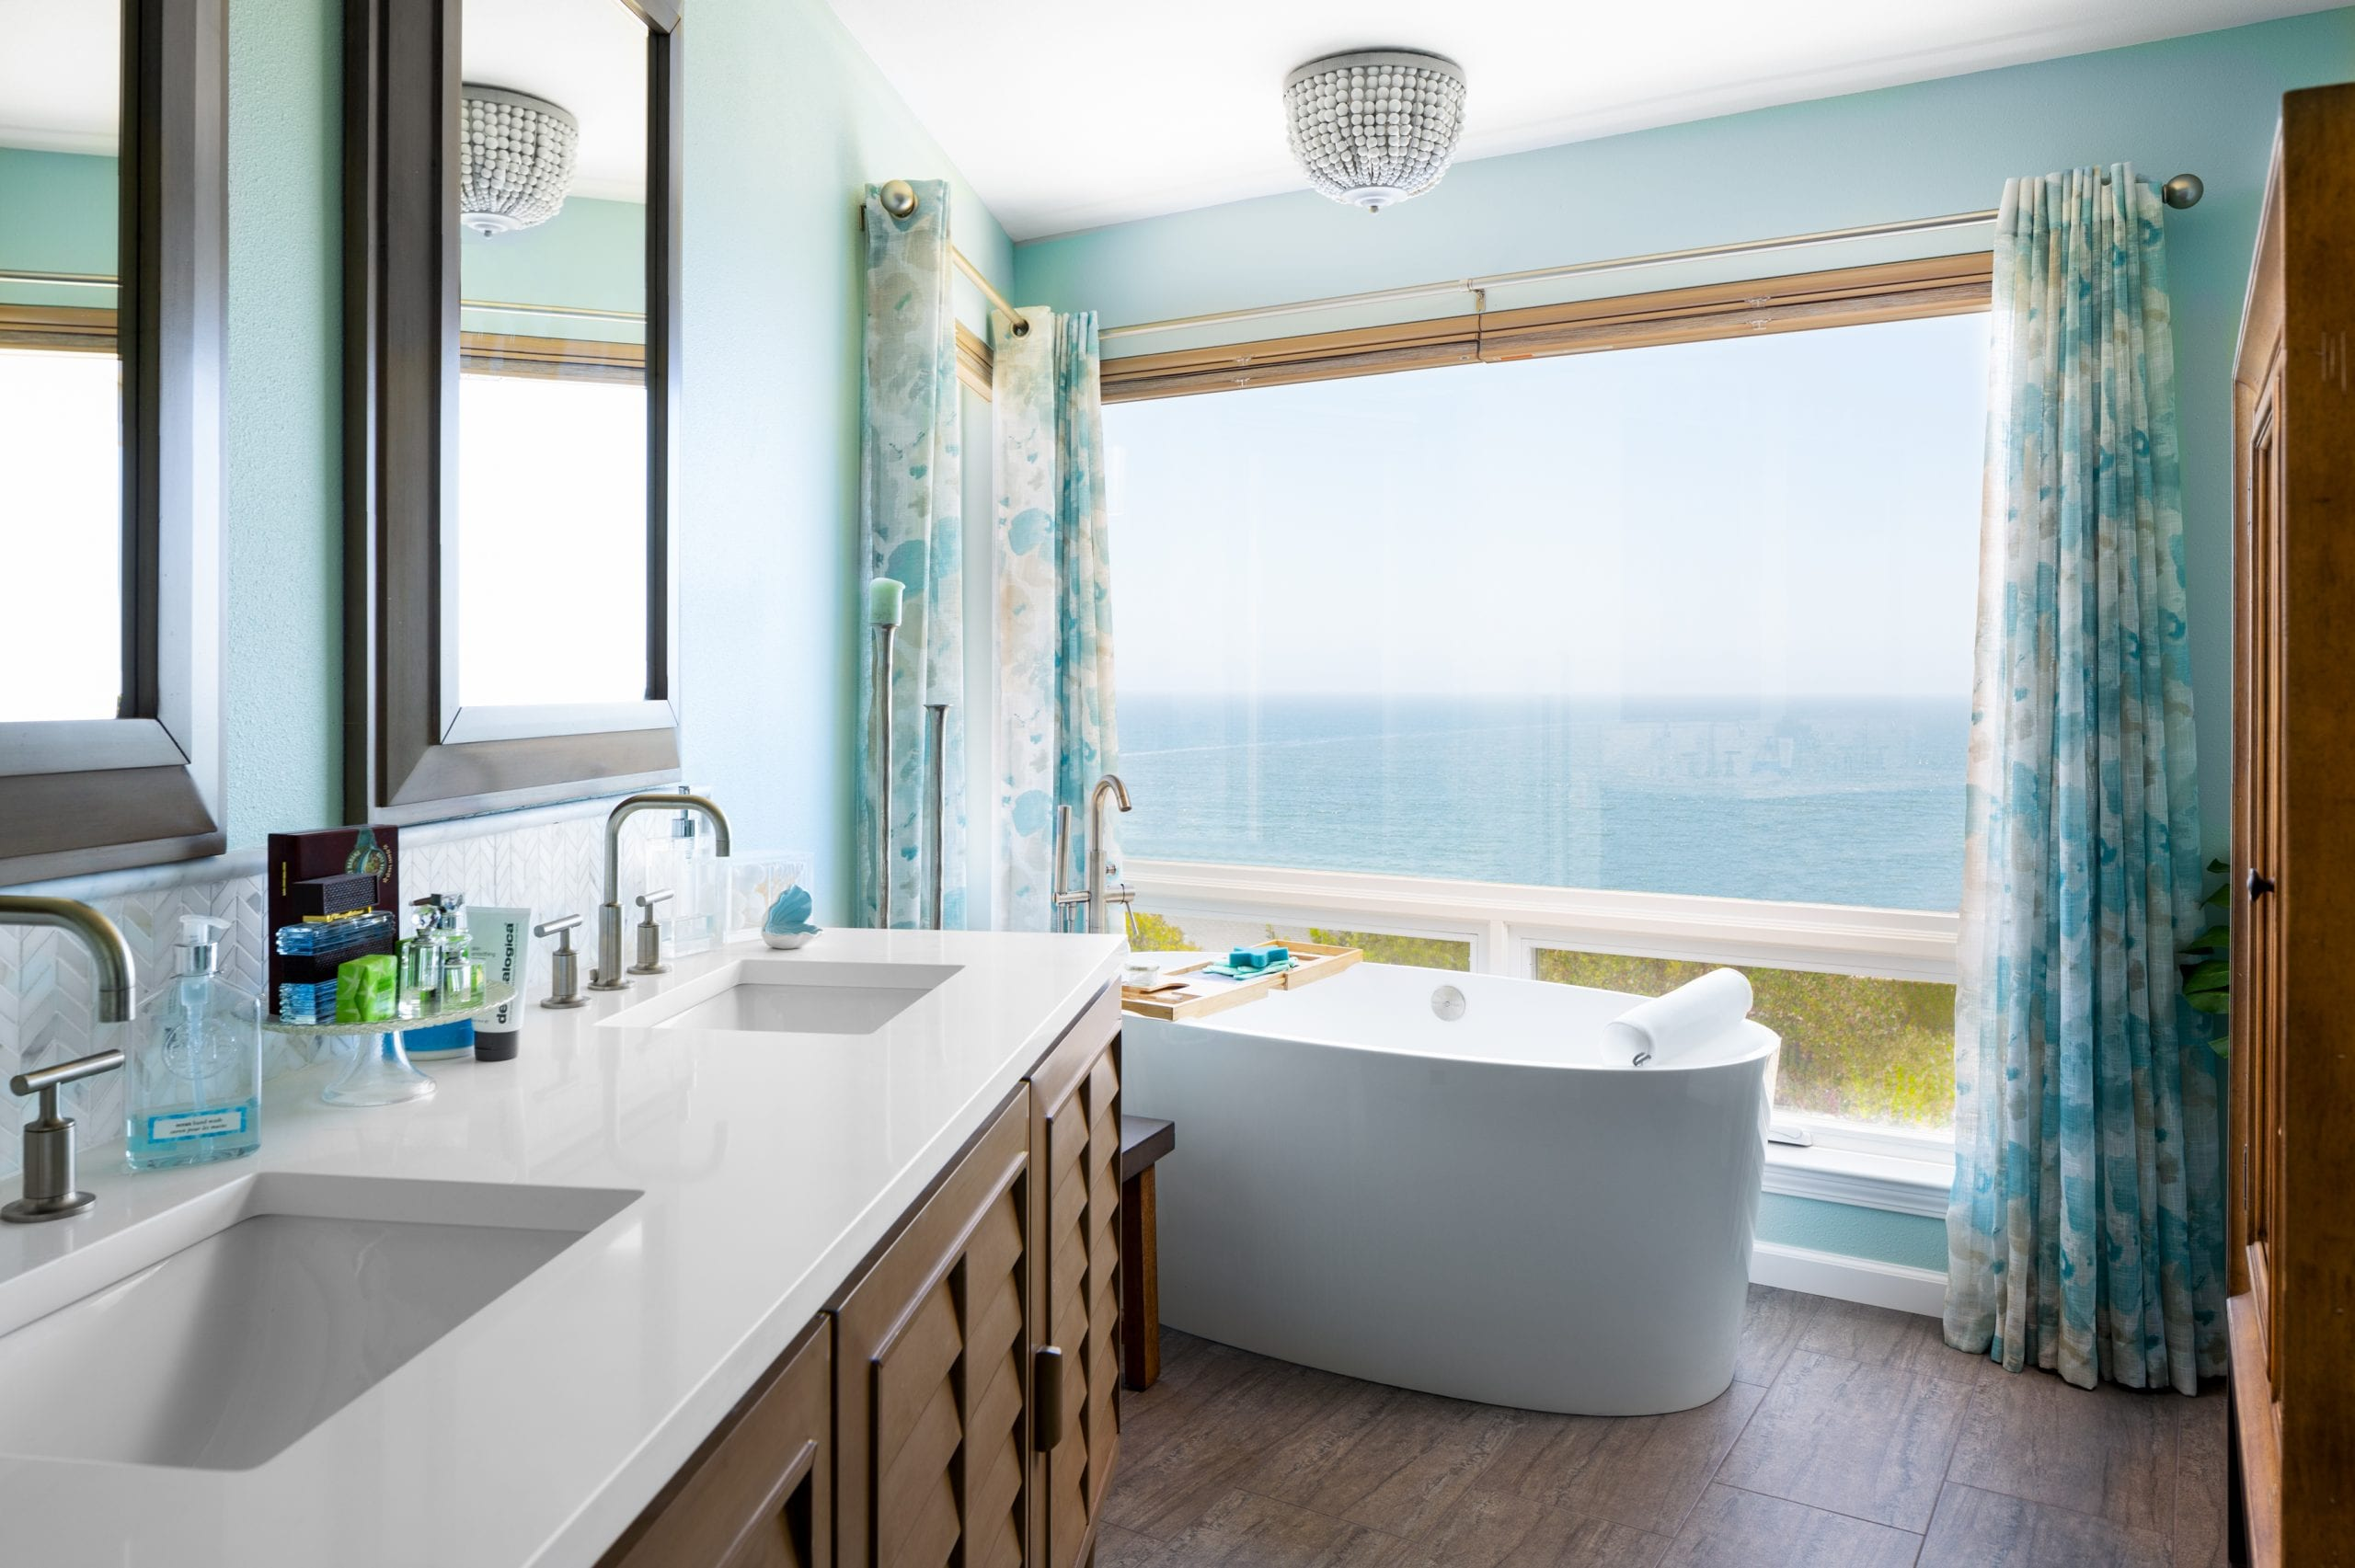 A-Room-With-A-View-in-Aptos12